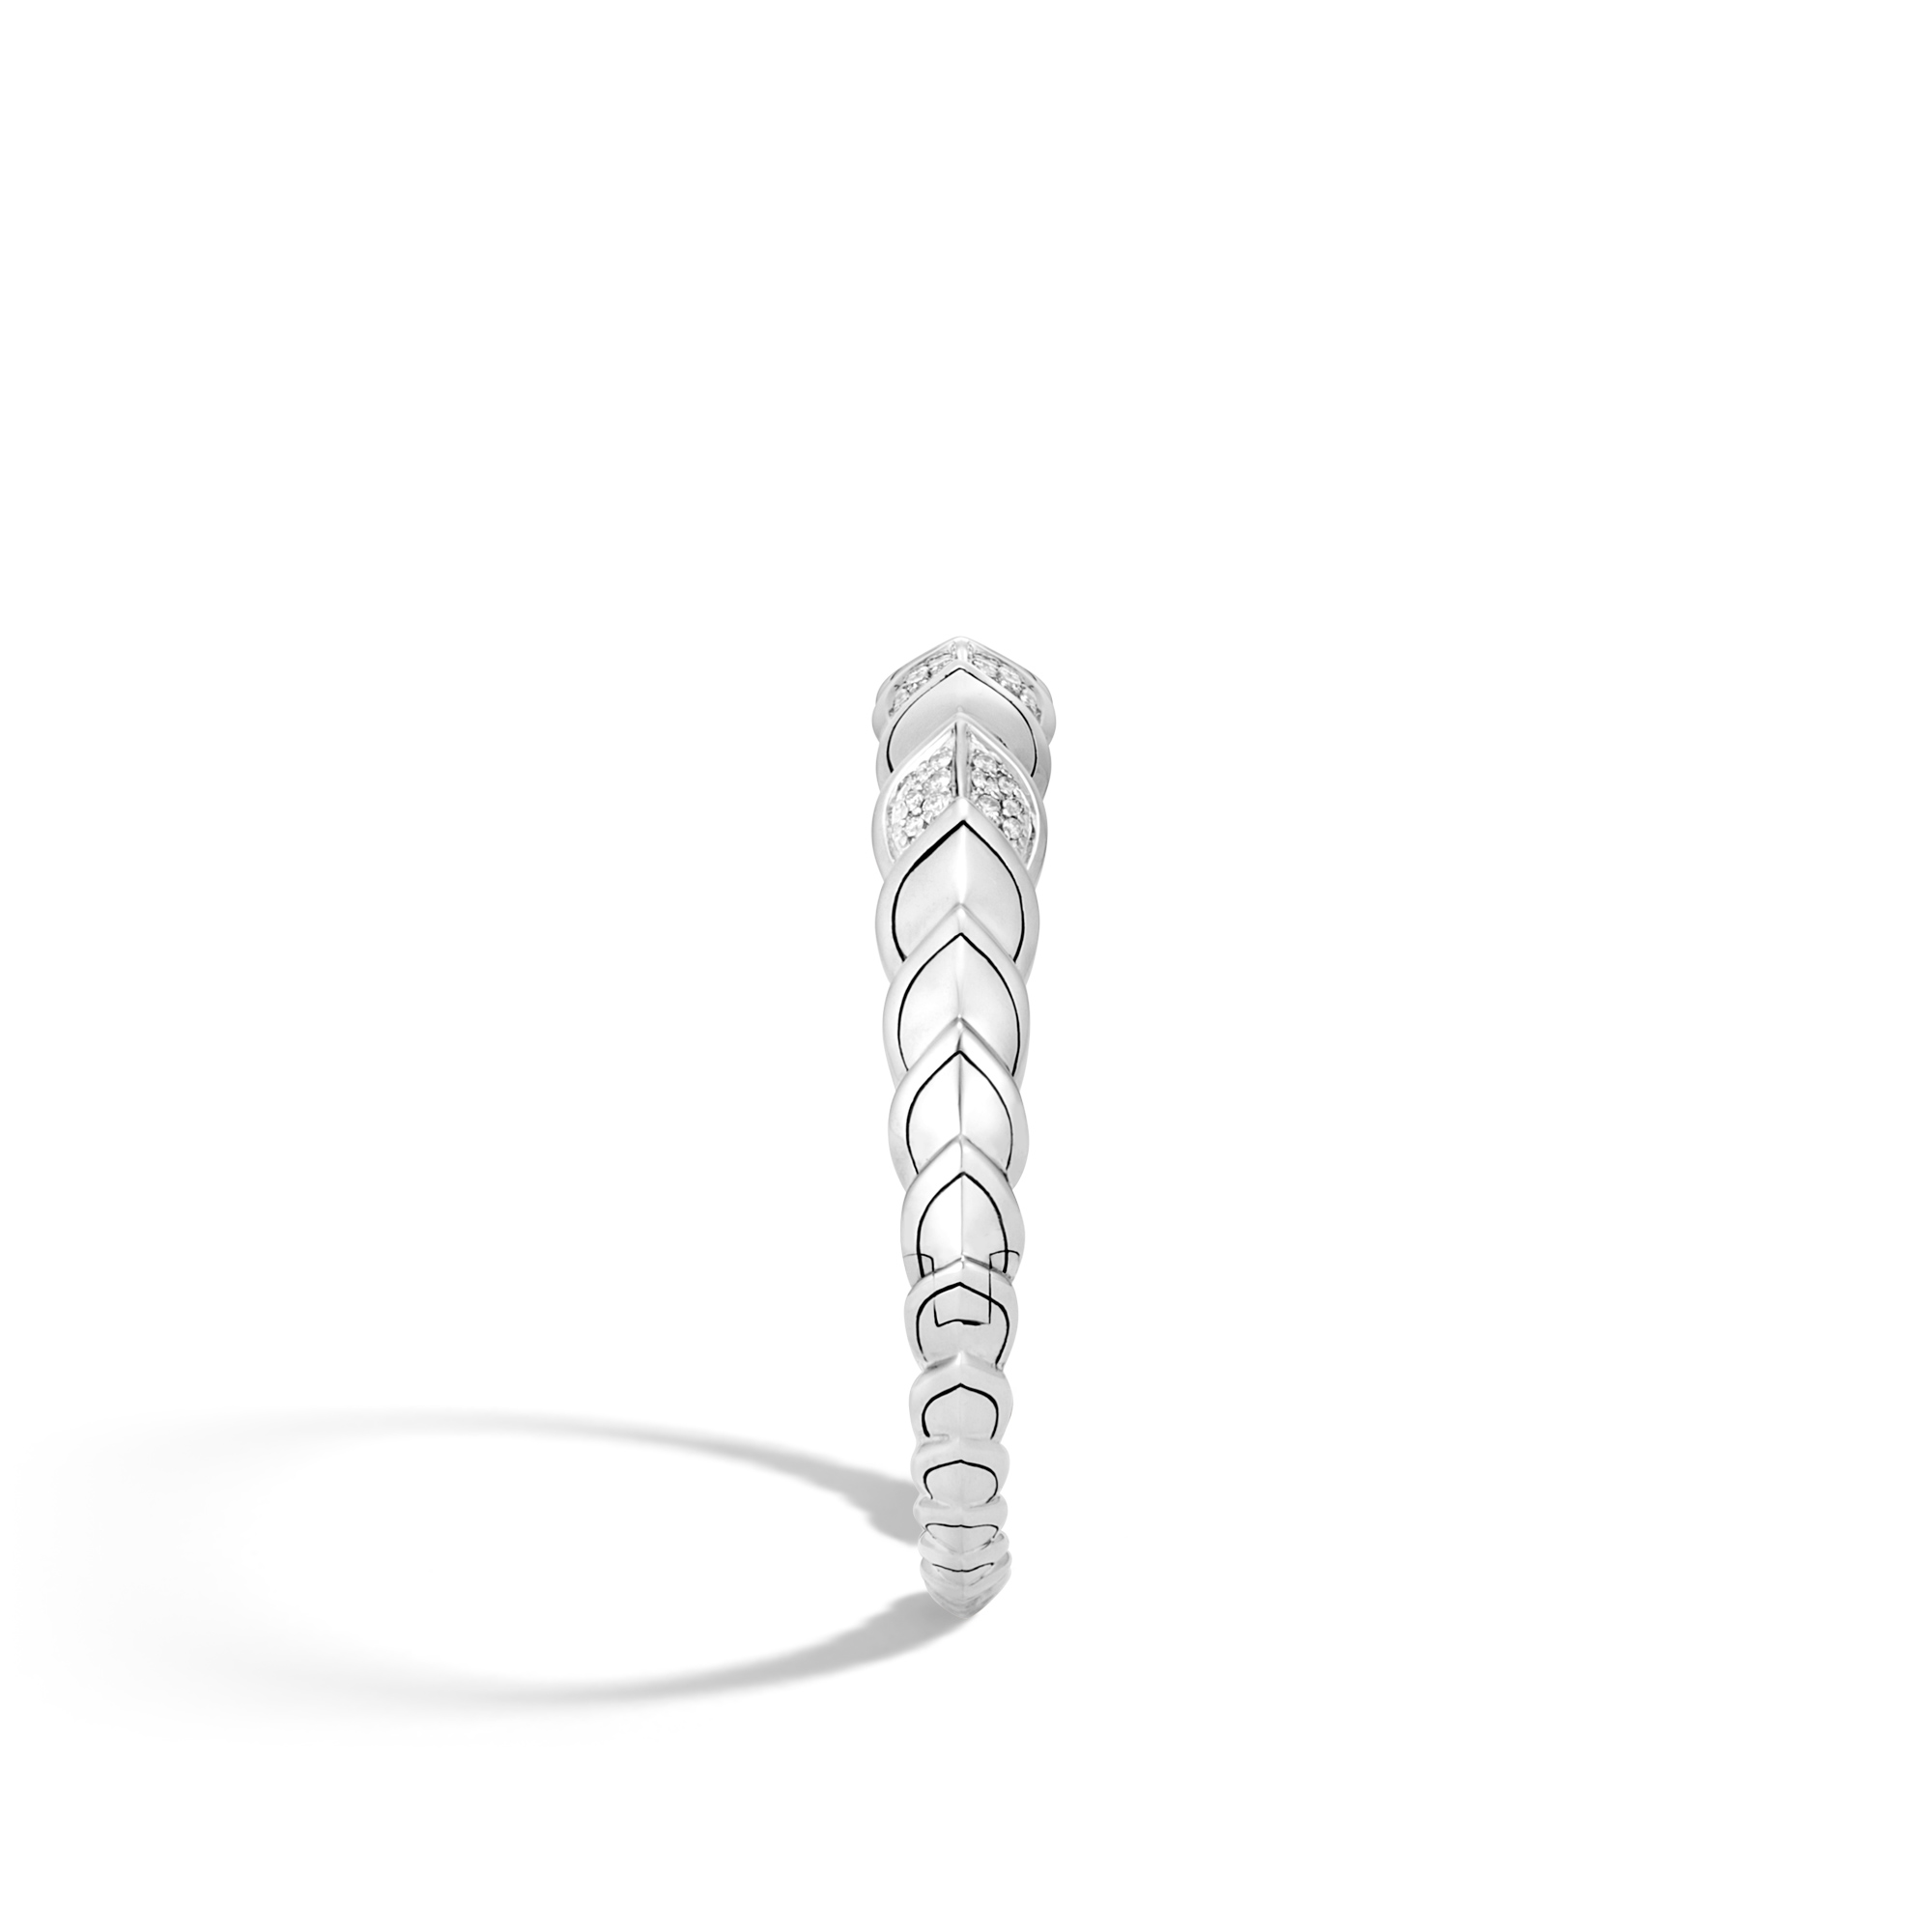 Legends Naga 11MM Cuff in Silver with Diamonds, White Diamond, large